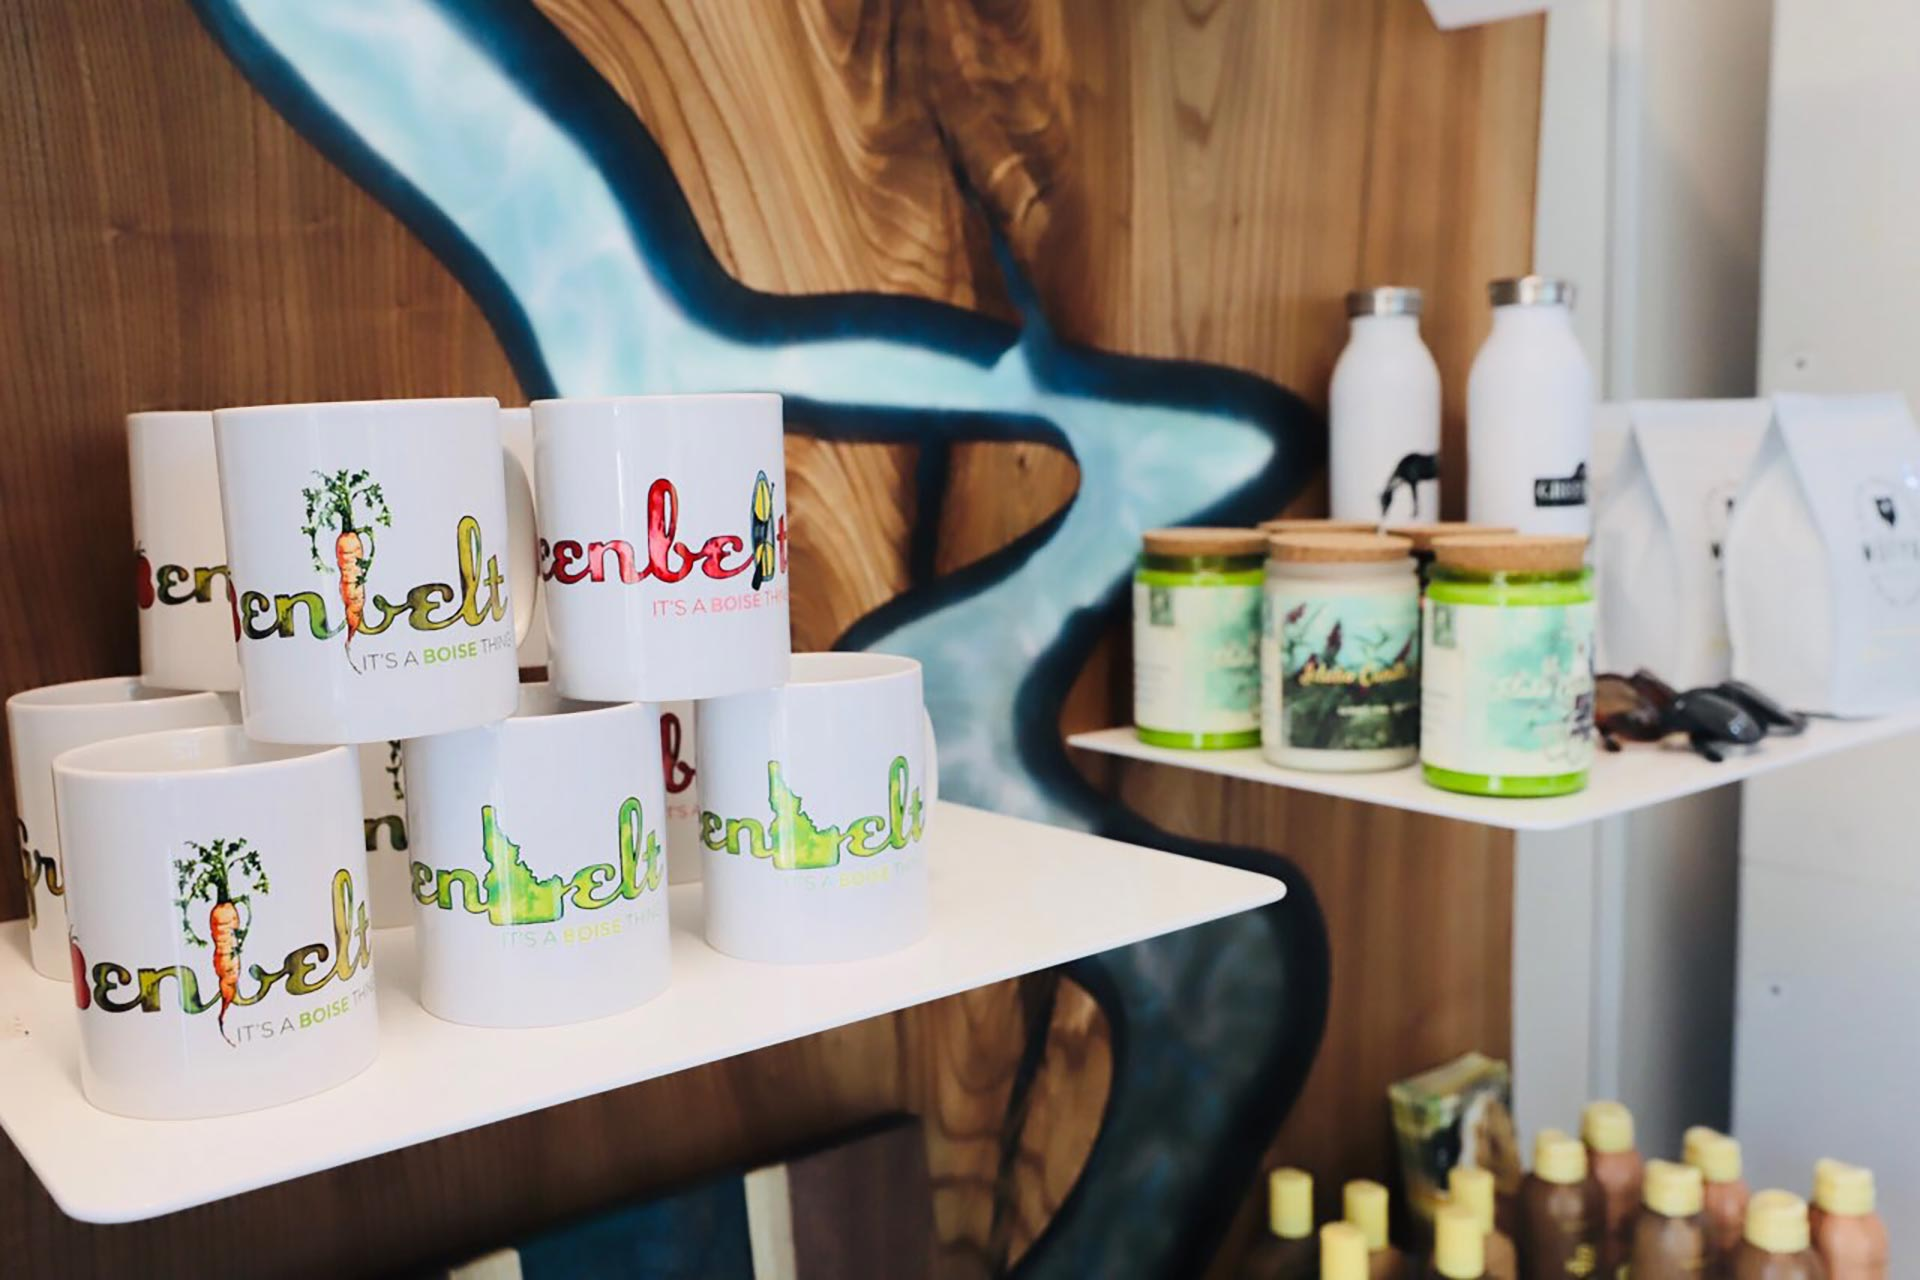 Greenbelt Mugs at Greenbelt Market